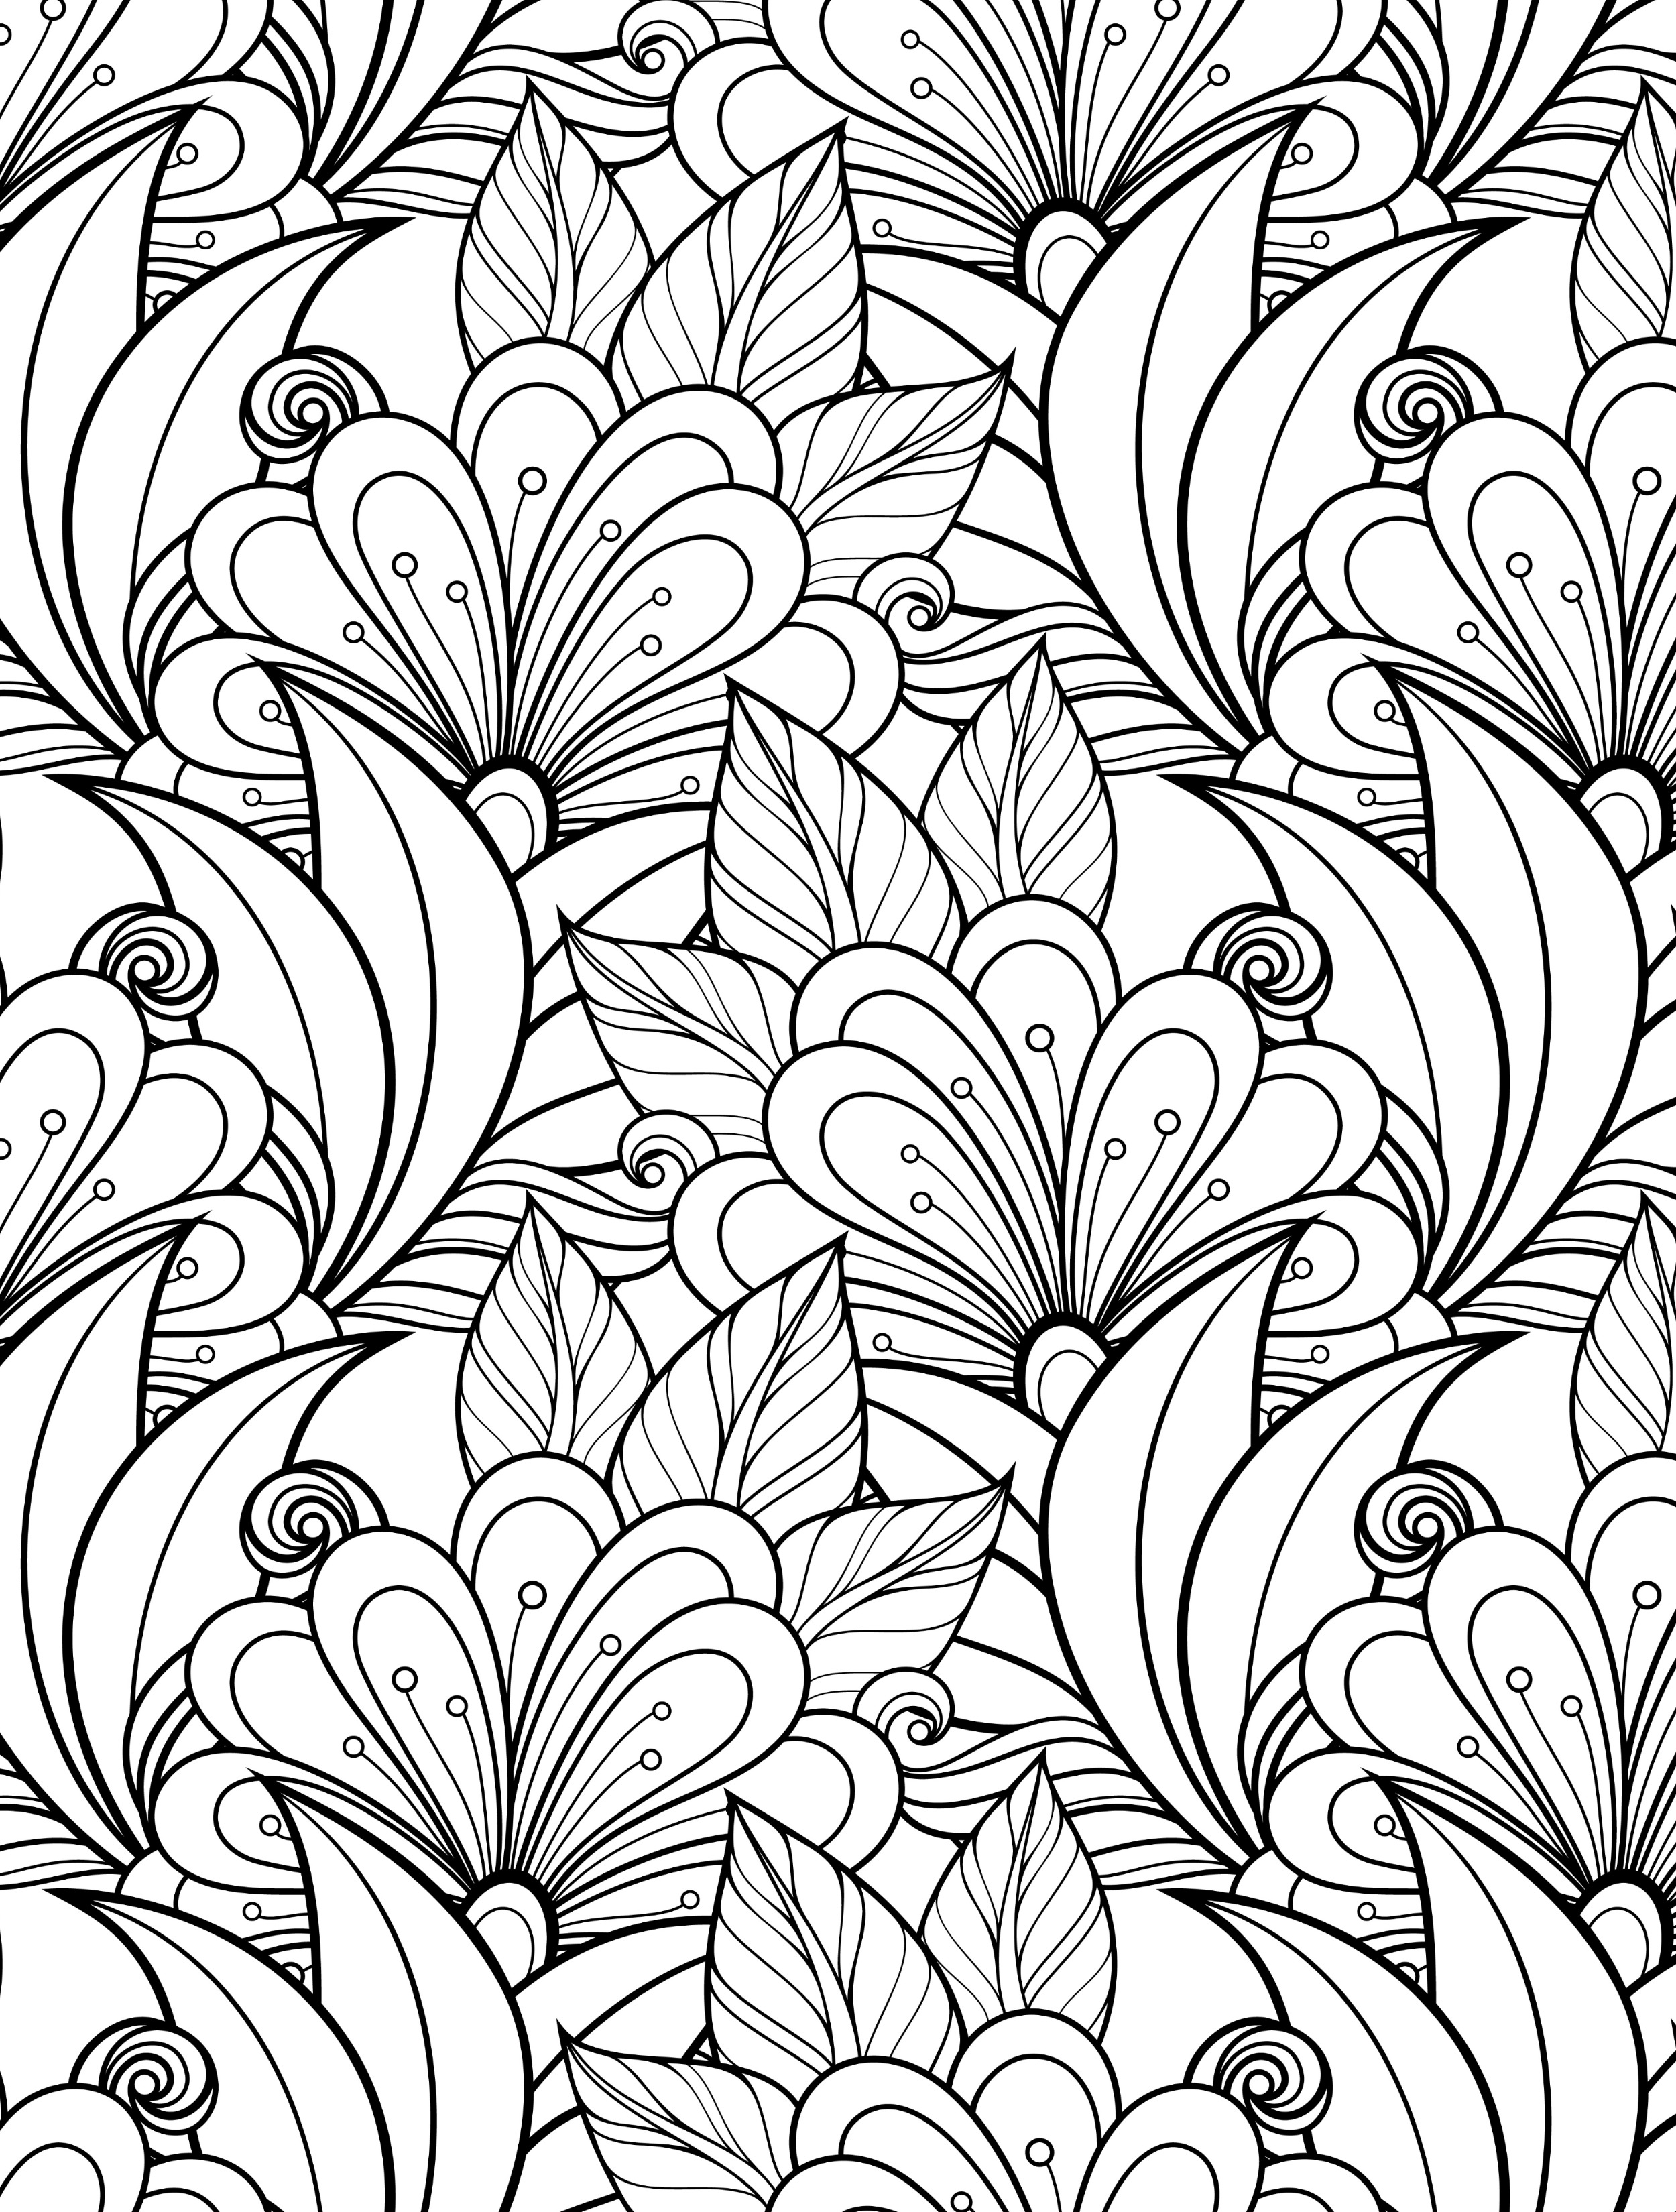 Refundable Coloring Book Printable 24 More Free Adult Pages Page 7